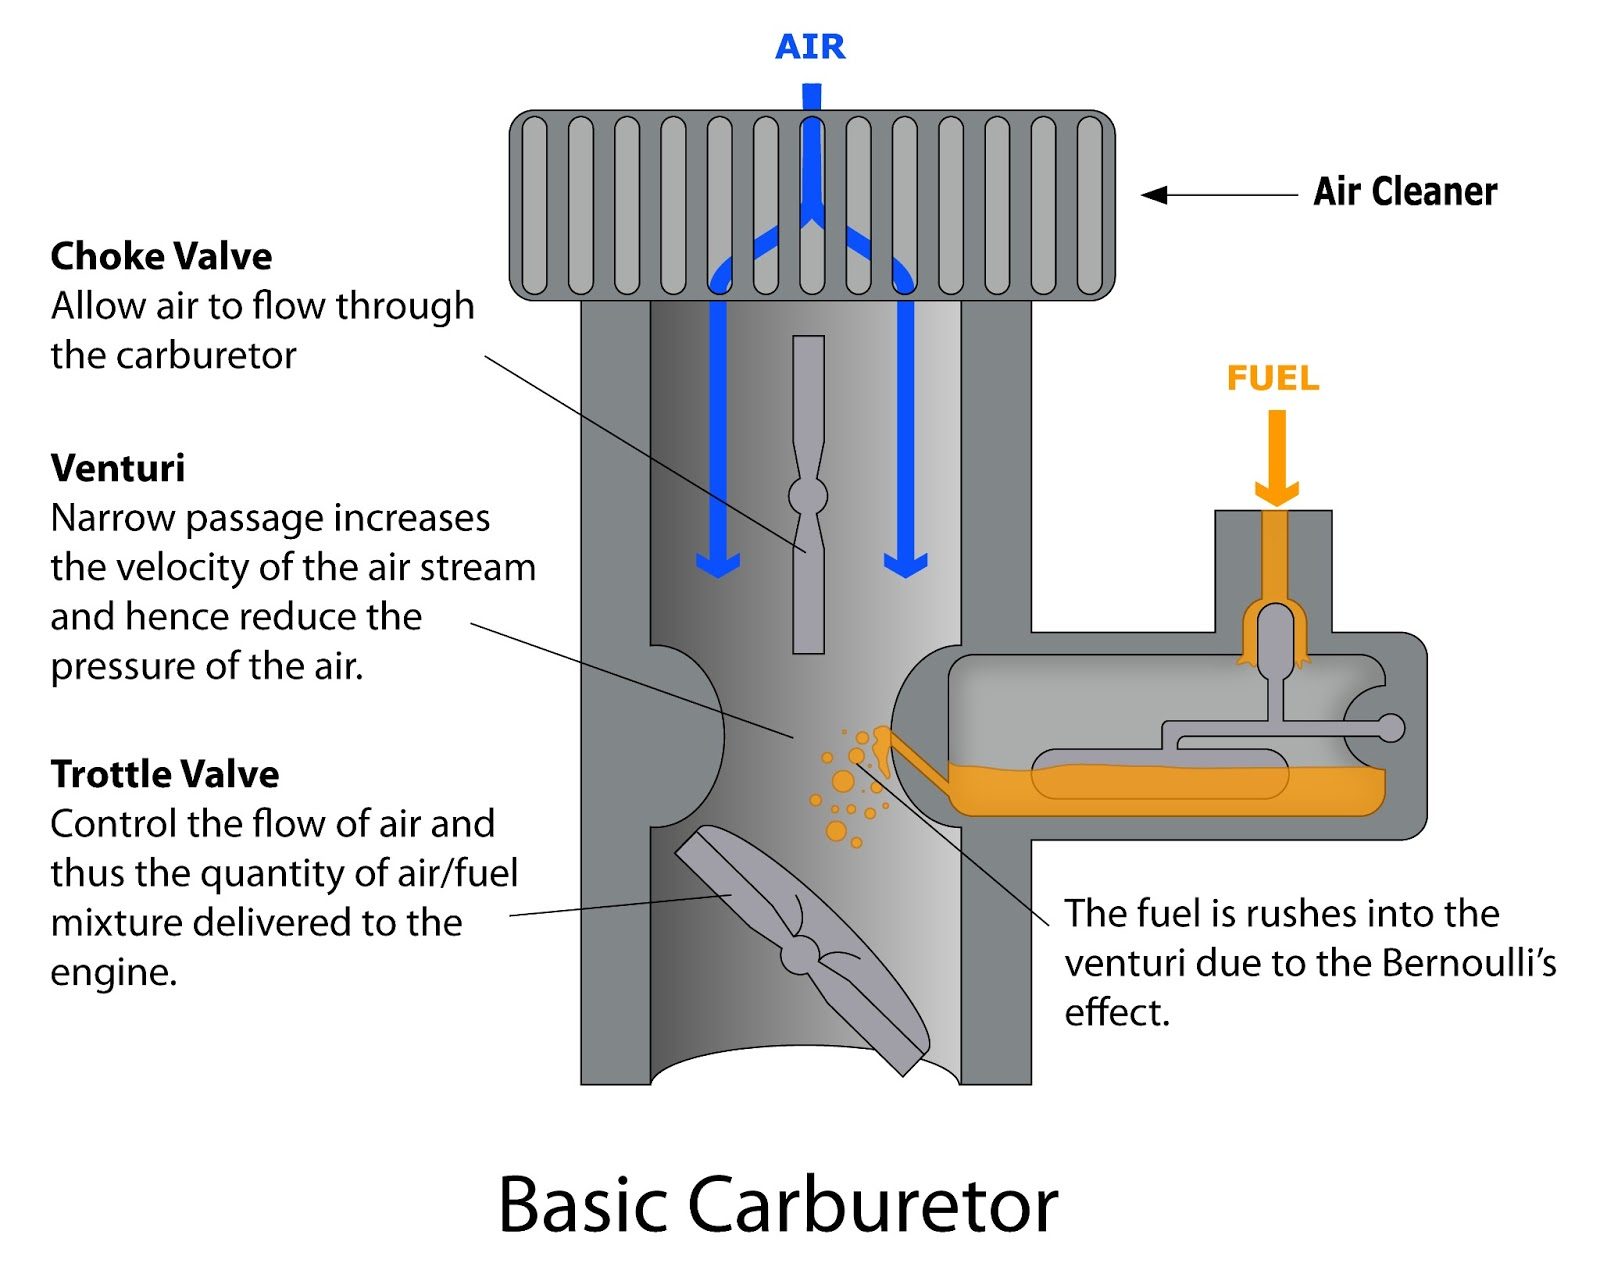 Application of bernoullis principle spm physics form 4form 5 a carburetor is a device that blends air and fuel for an internal combustion engine figure above shows how bernoullis principle is applied in a carburetor pooptronica Choice Image